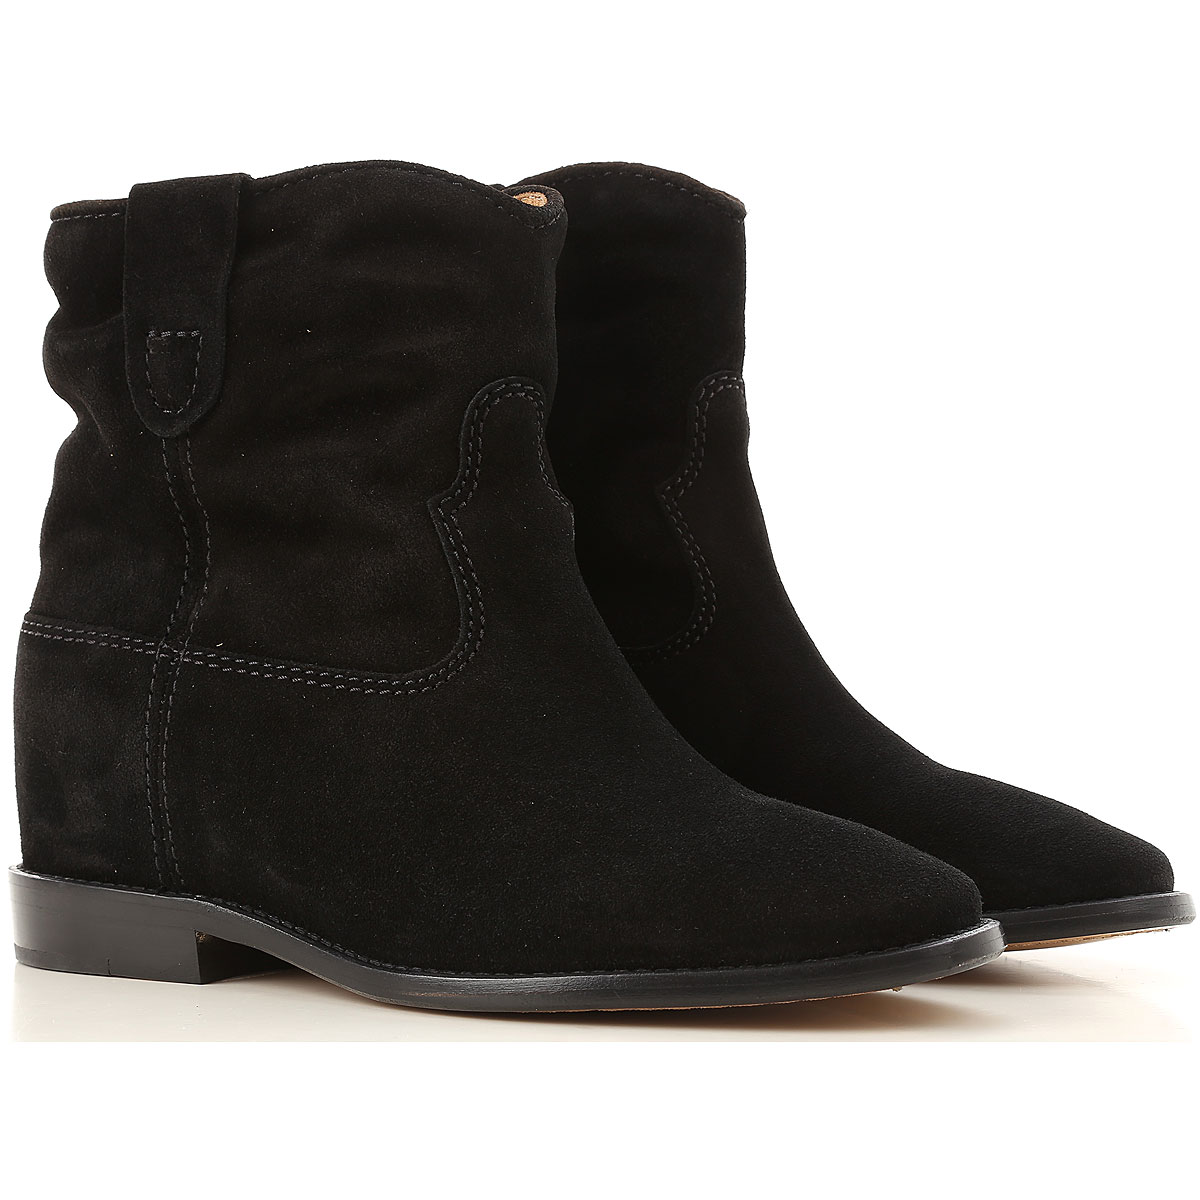 Image of Isabel Marant Boots for Women, Booties, Black, Suede leather, 2017, 11 6 9